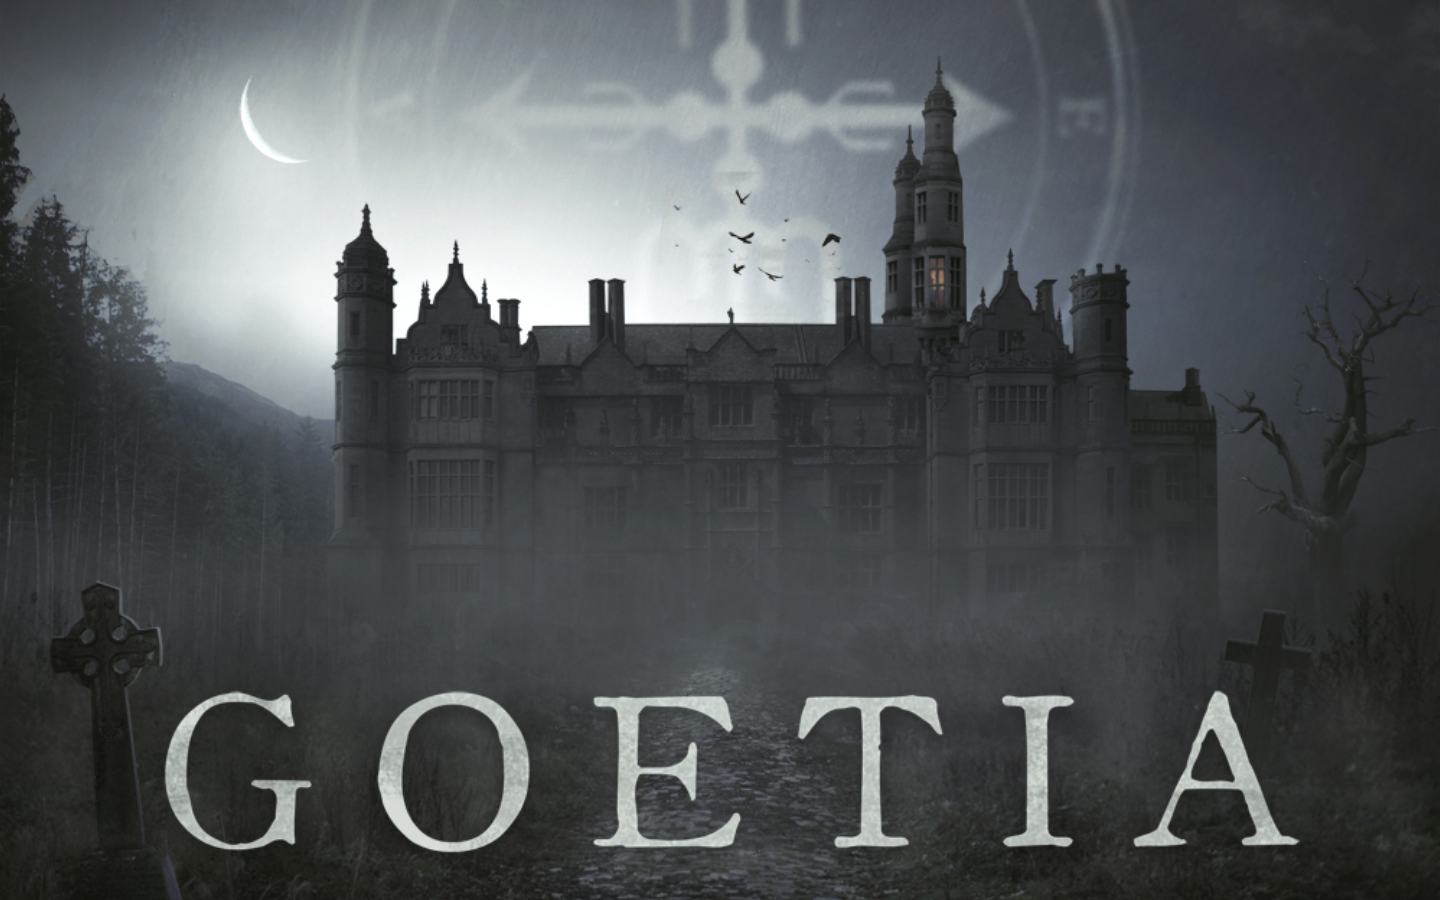 Warning You Are Dead Goetia Is A Dark Atmospheric Point And Click Adventure Developed By Sushee And Publis How To Find Out Future Games Upcoming Video Games